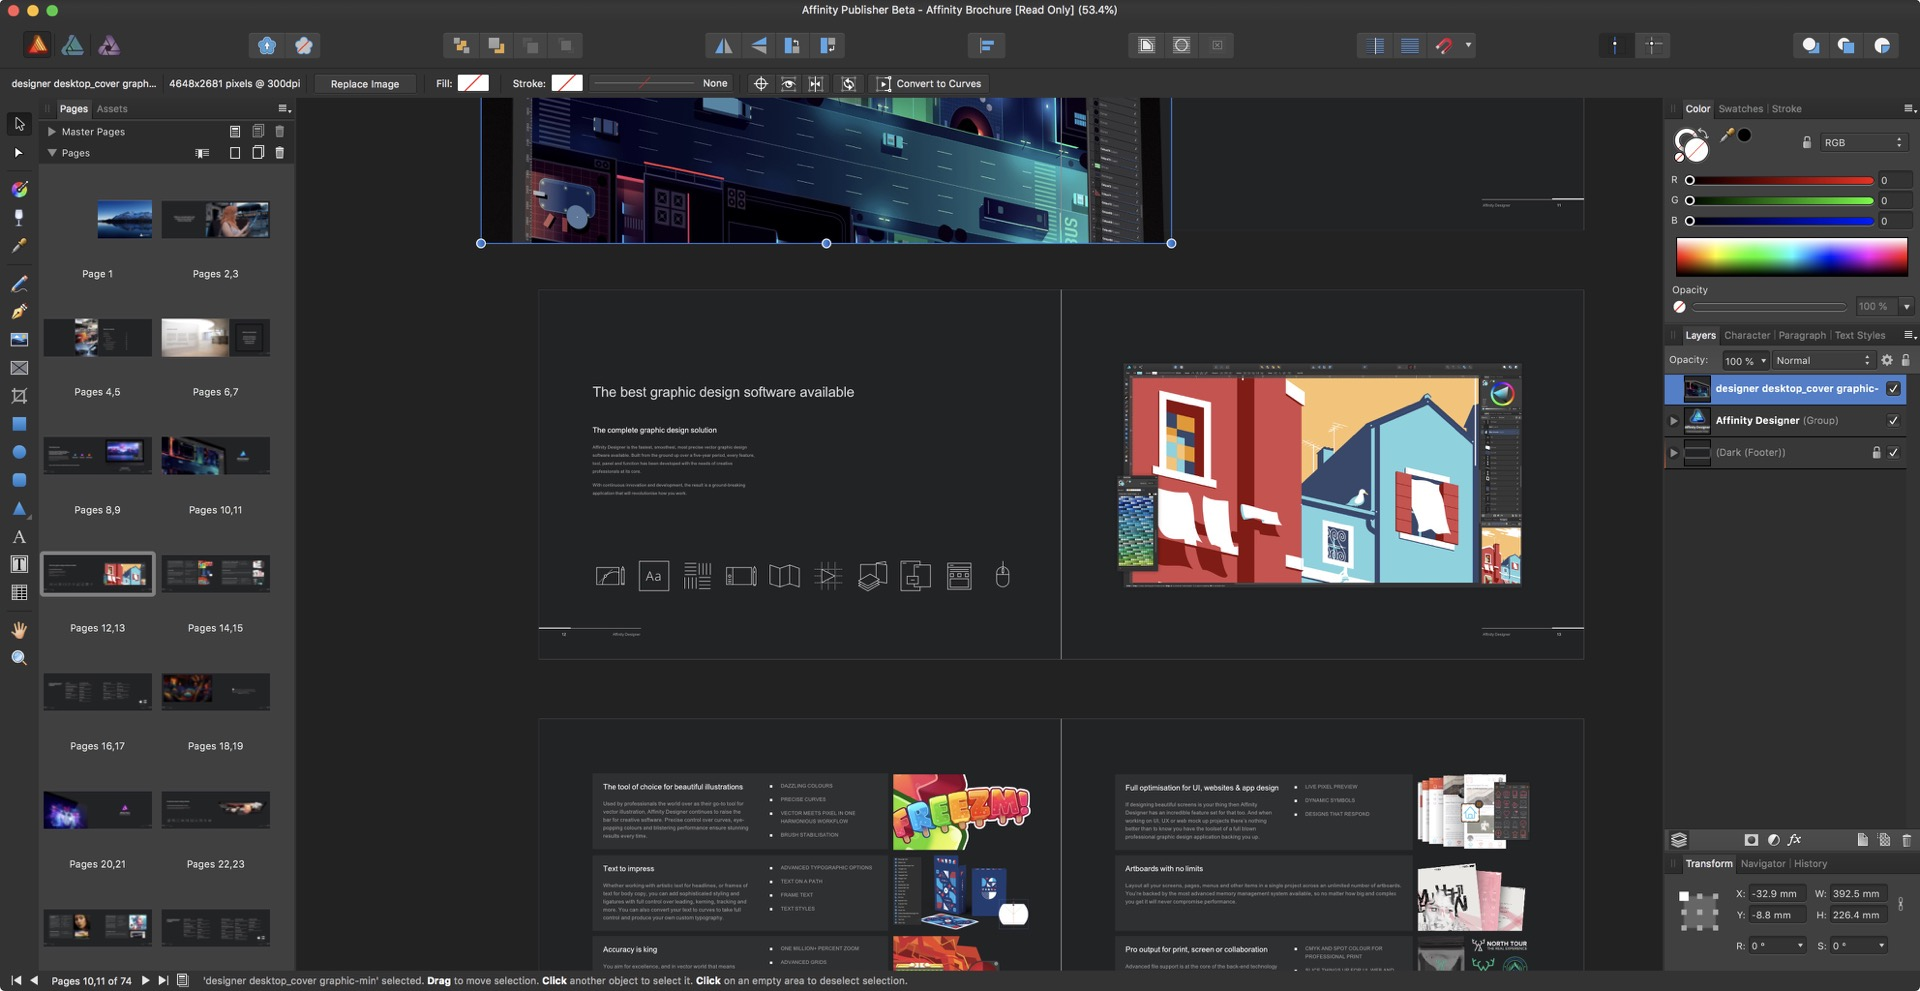 How to download affinity photo for free mac